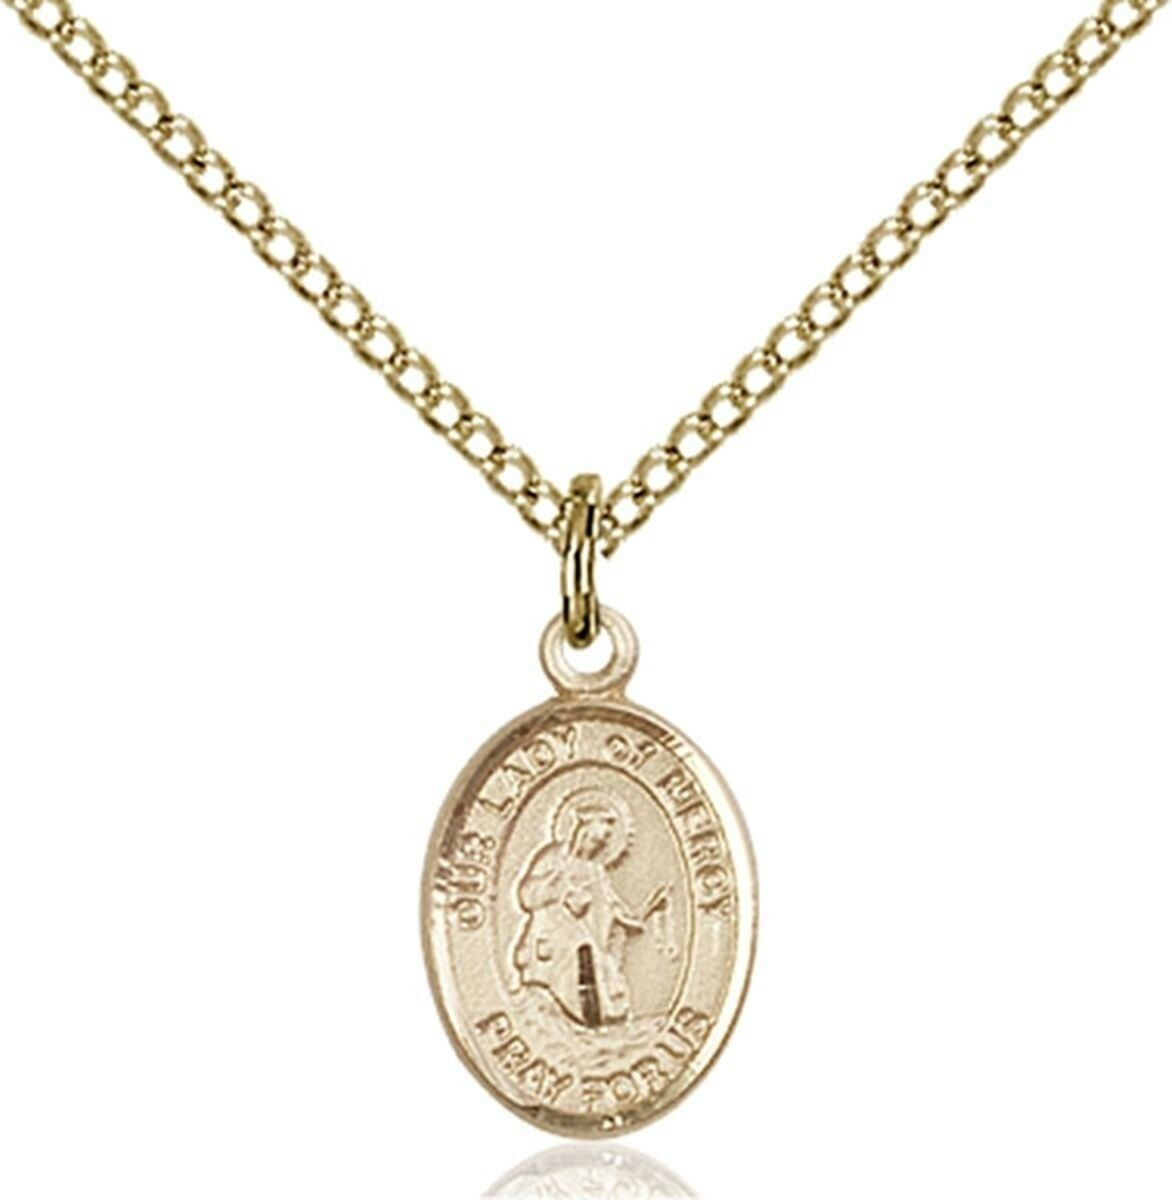 14KT gold Filled Our Lady of Mercy Charm Medal, 1 2 Inch